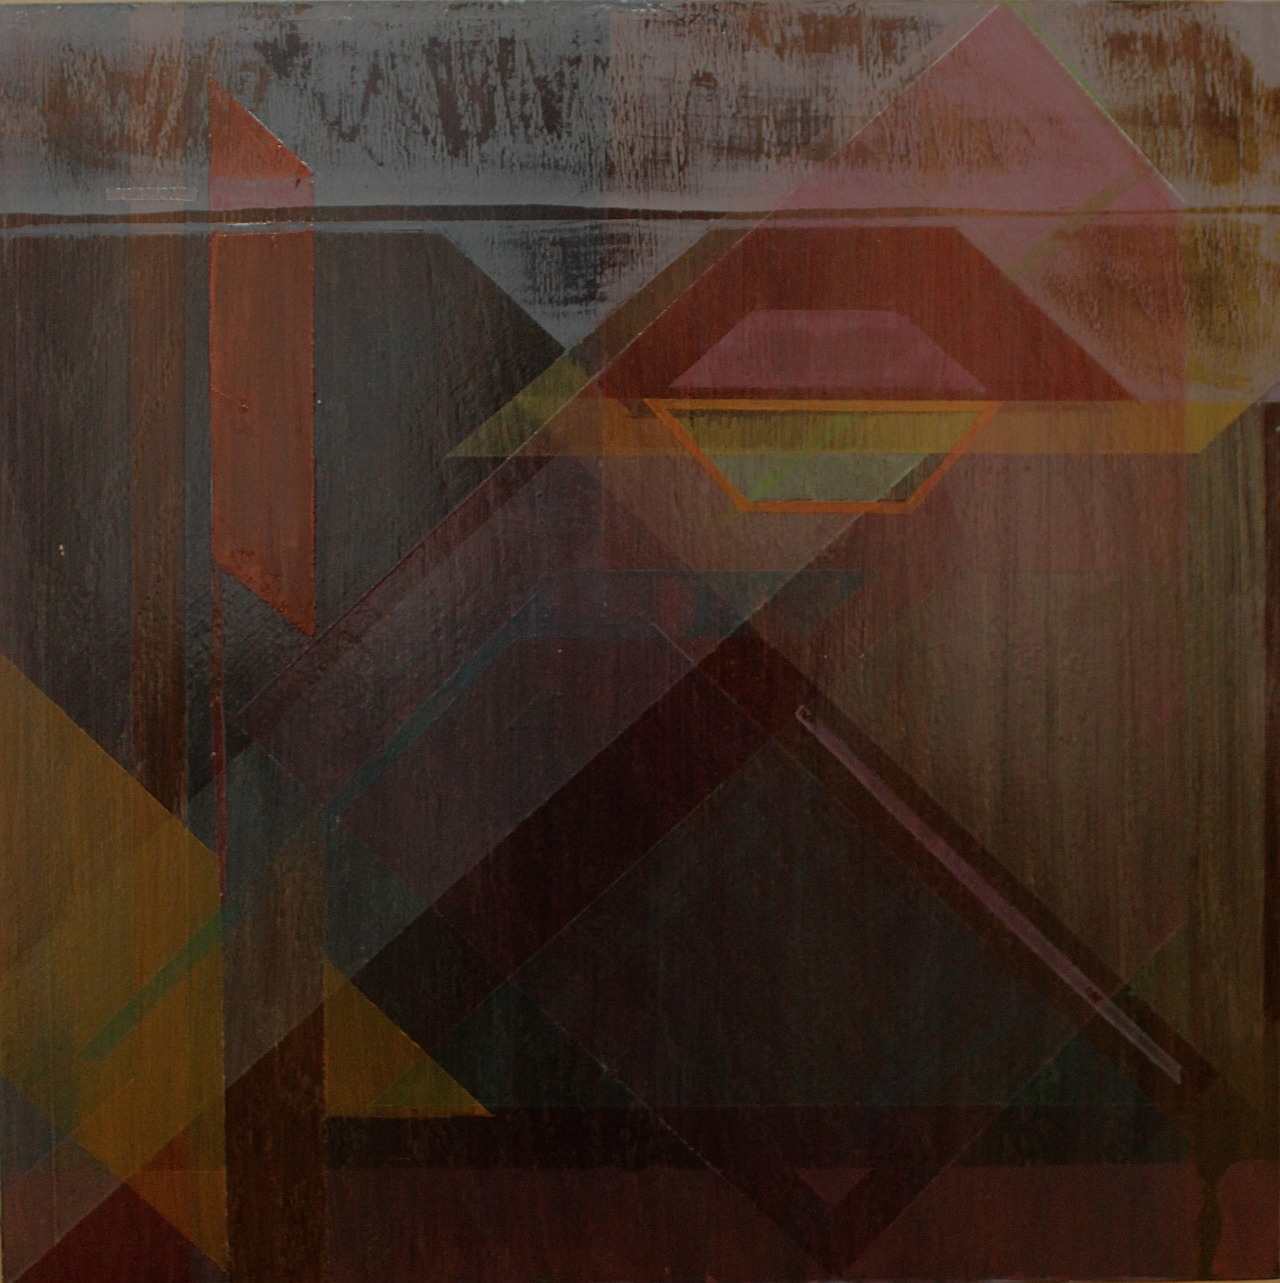 Brown fx VPolycrylic and fluid acrylic on wood panel2ft x 2ft2013